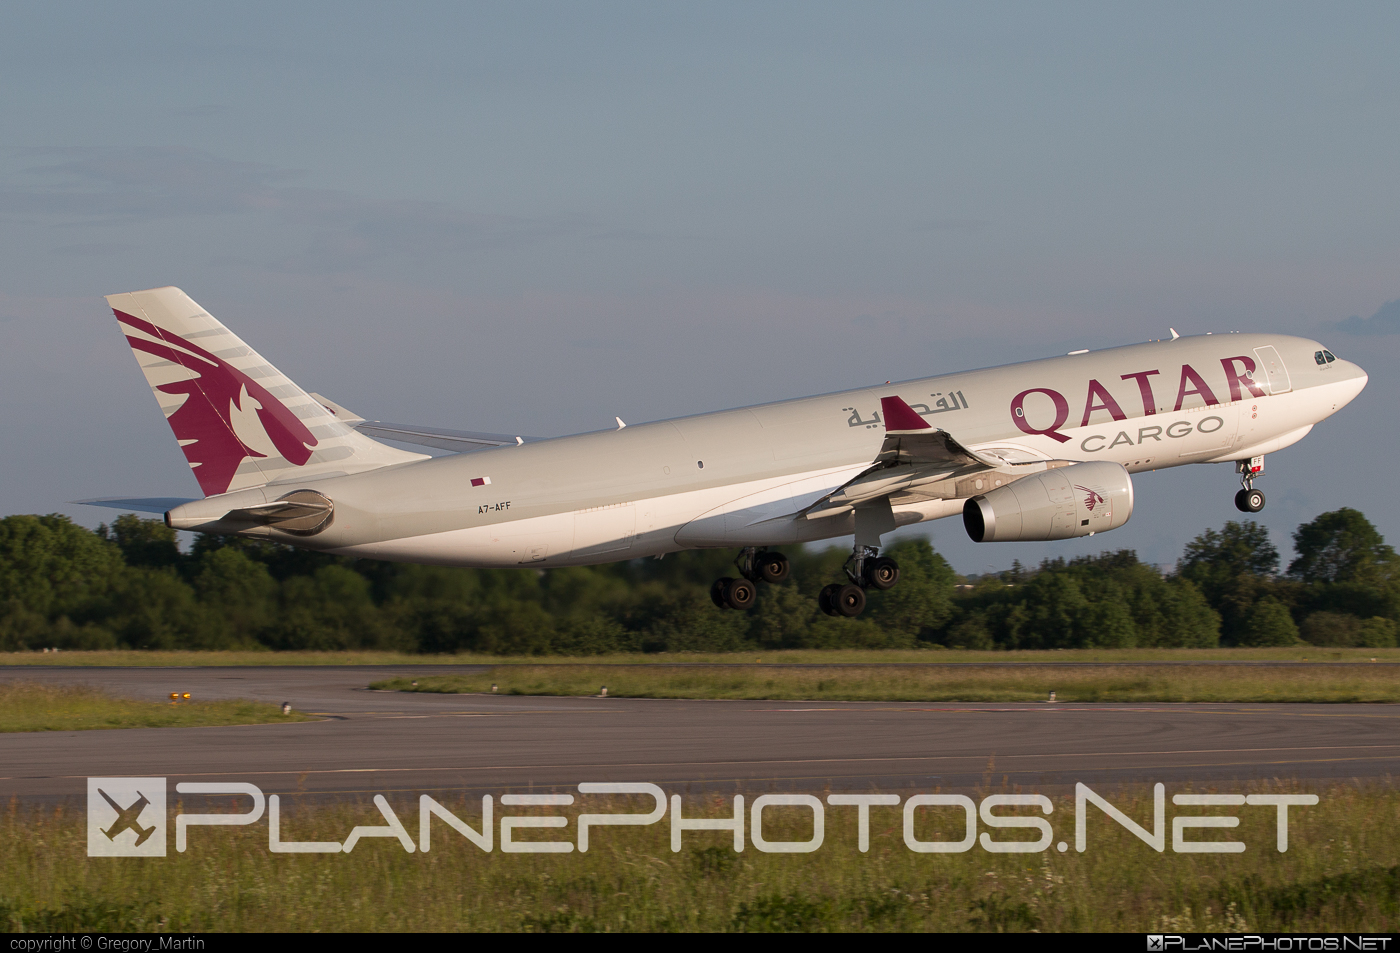 Airbus A330-243F - A7-AFF operated by Qatar Airways Cargo #a330 #a330f #a330family #airbus #airbus330 #qatarairwayscargo